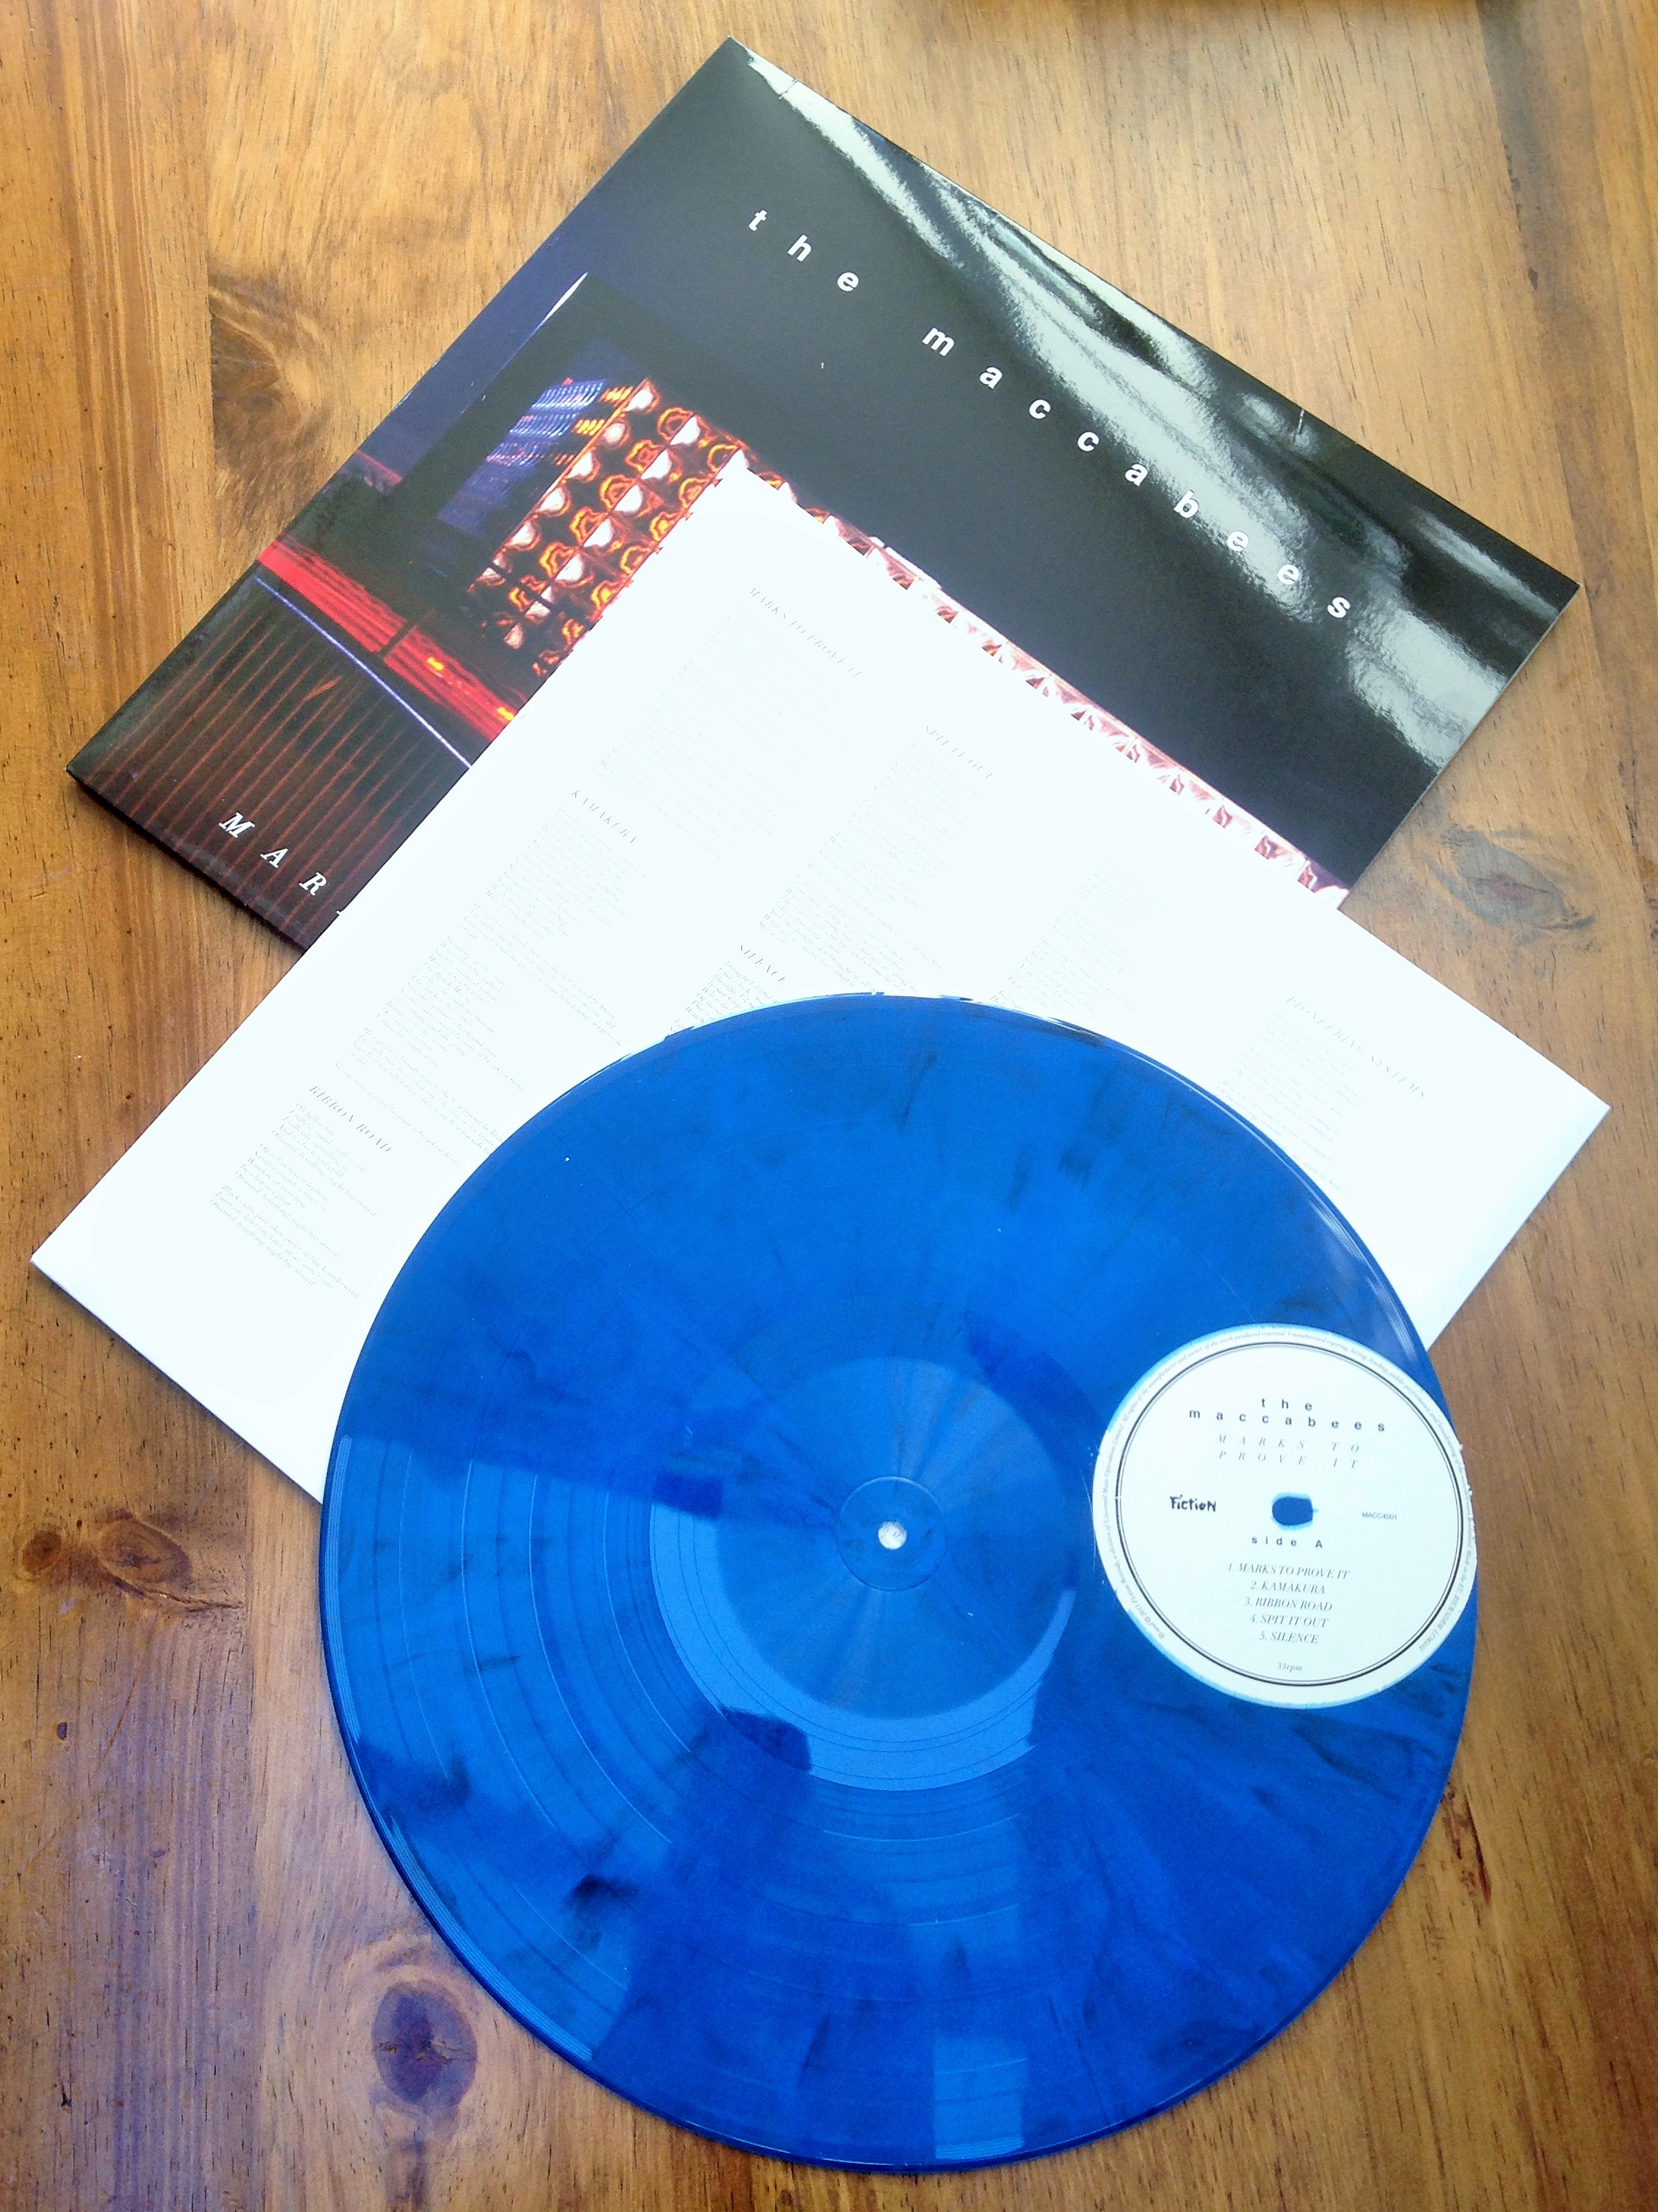 Maccabees limited edition vinyl - kenningtonrunoff.com